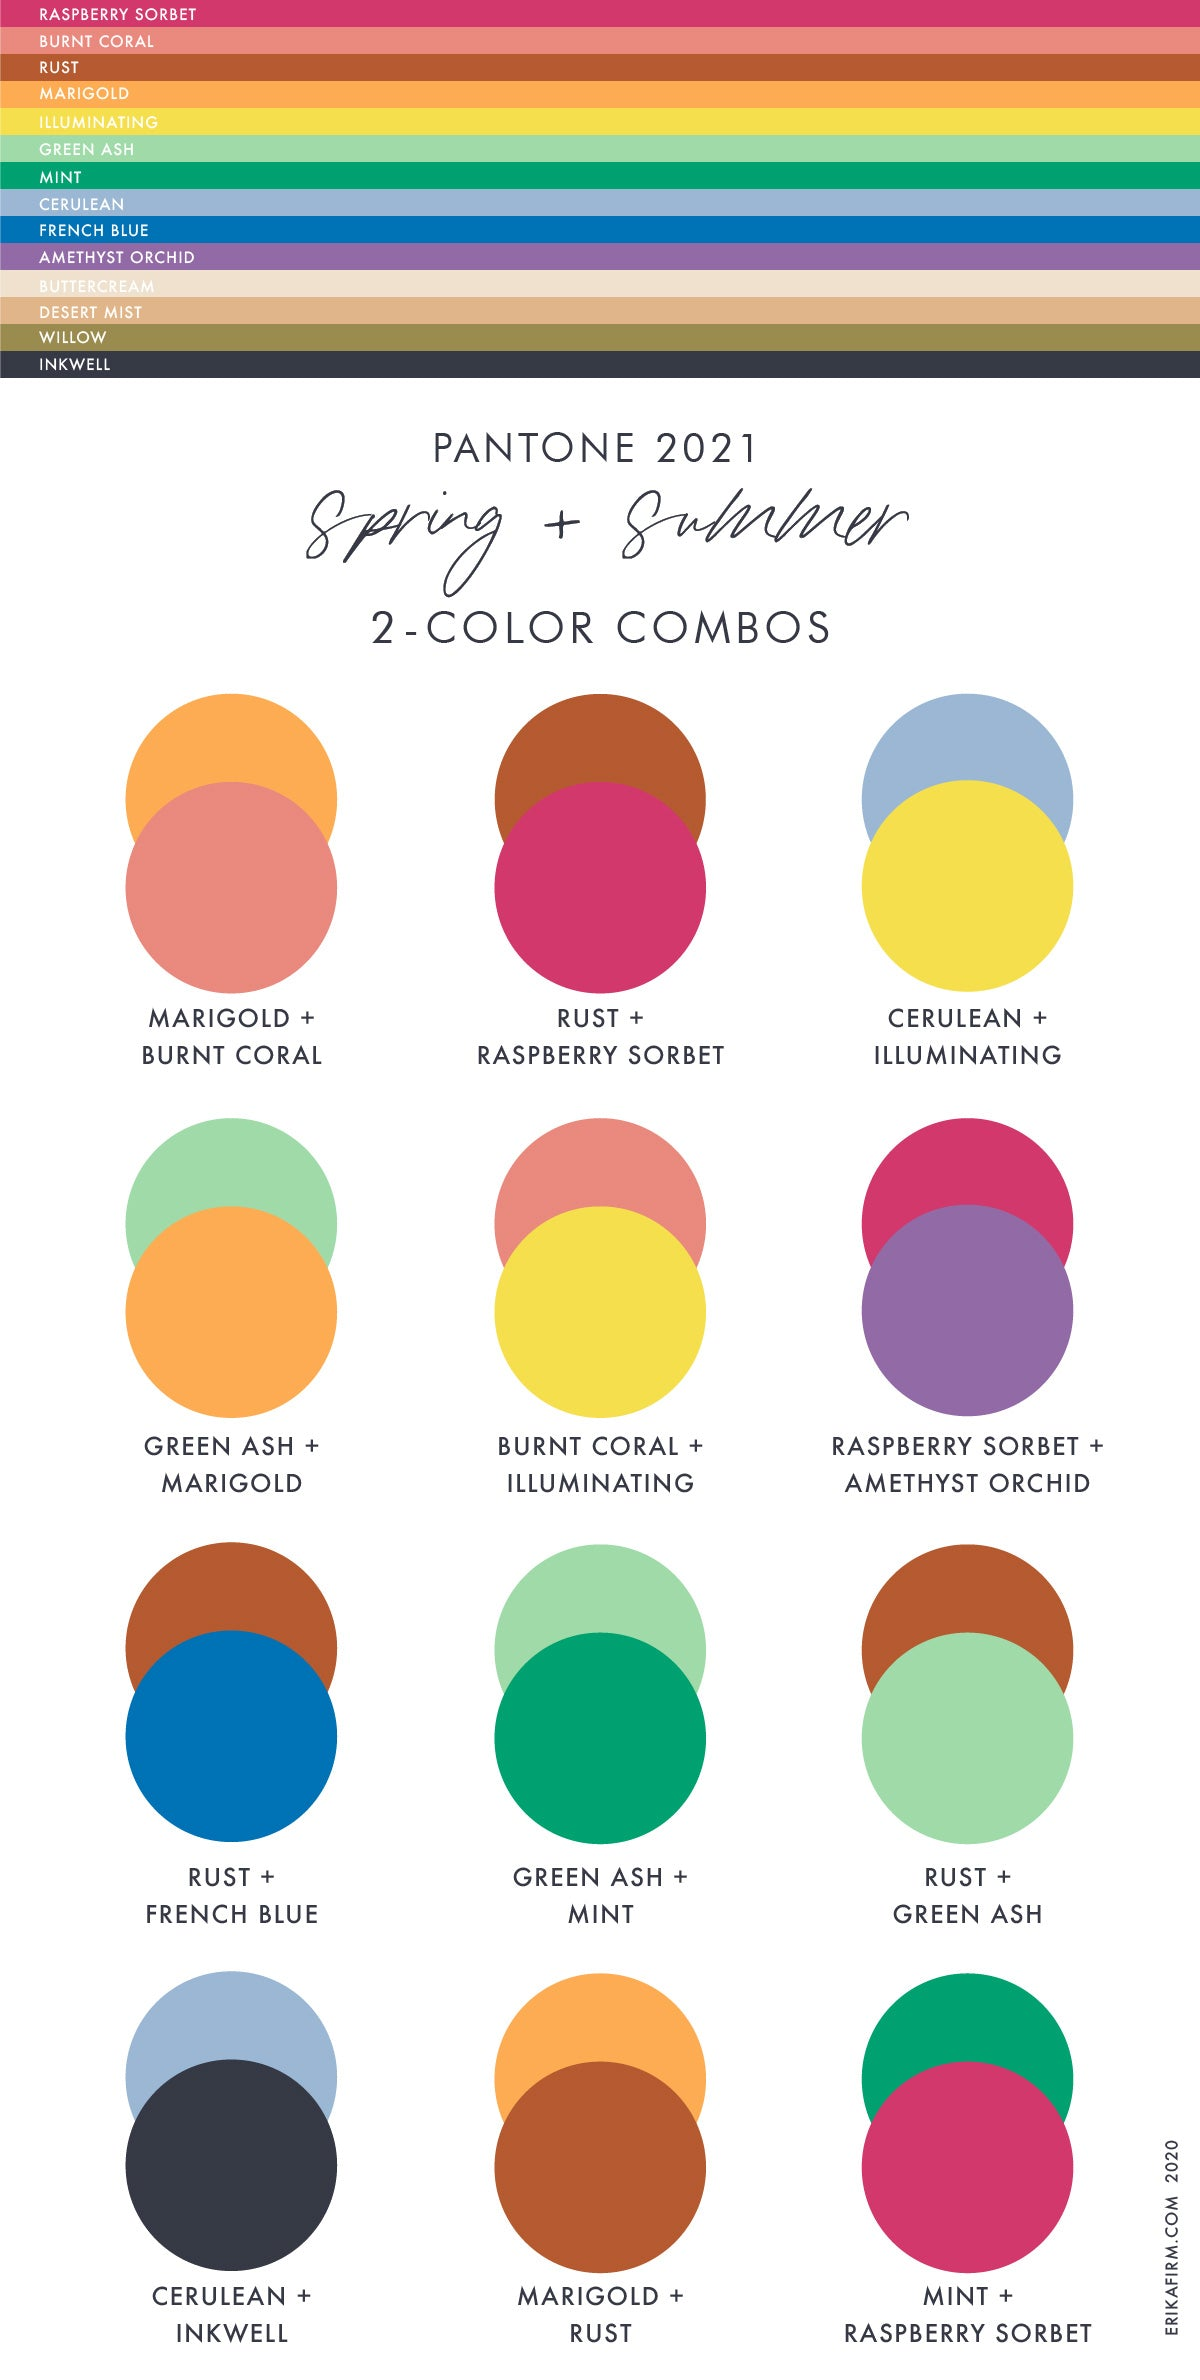 Spring 2021 Summer 2021 Pantone Color Trends Report Two Color Combinations by Erika Firm